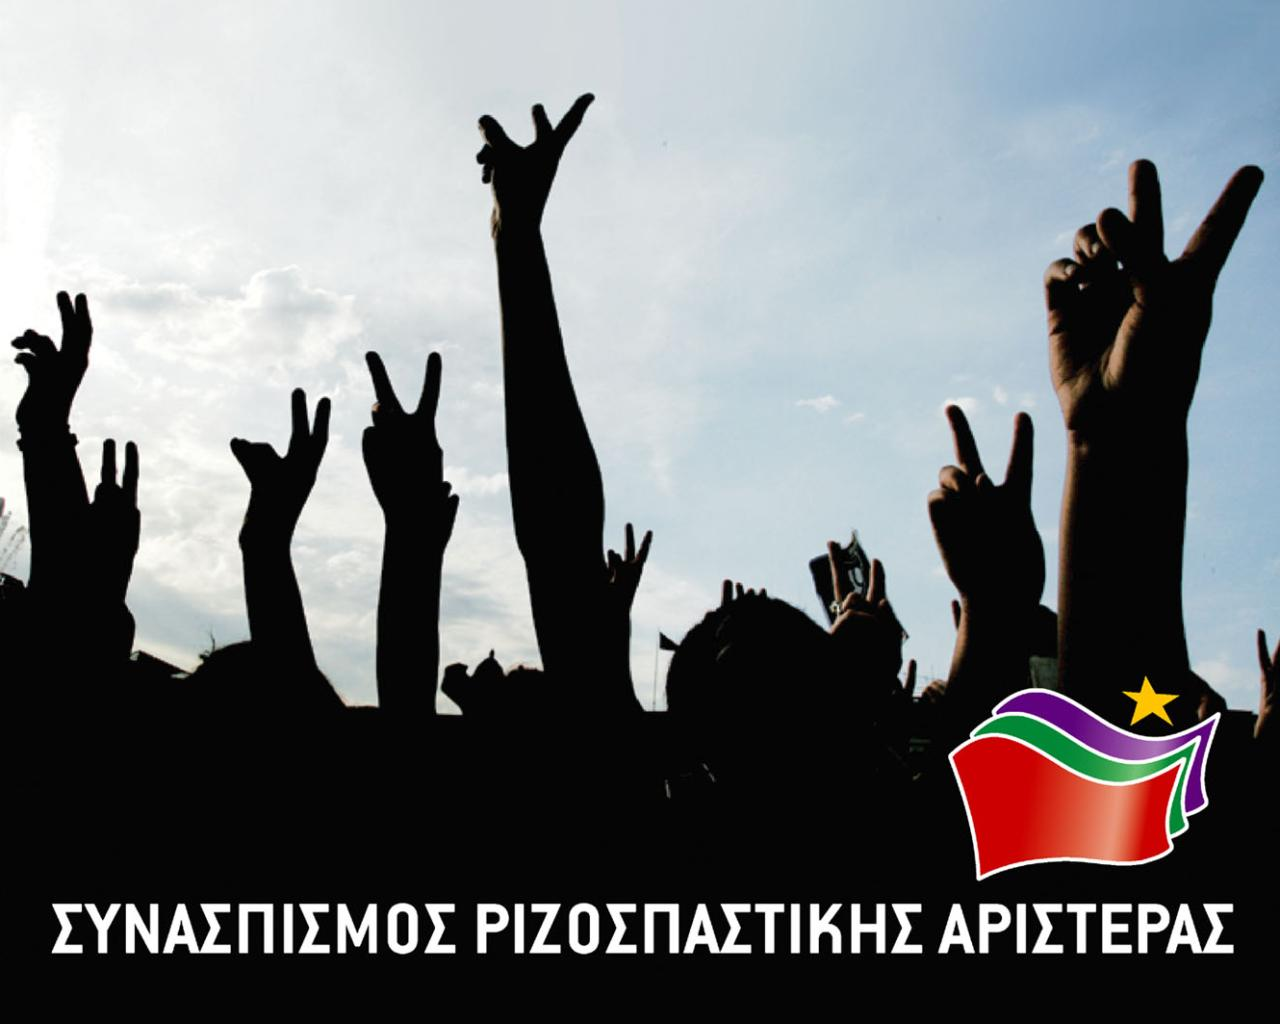 Lessons from SYRIZA's Failure: Build a New Economy & Polity